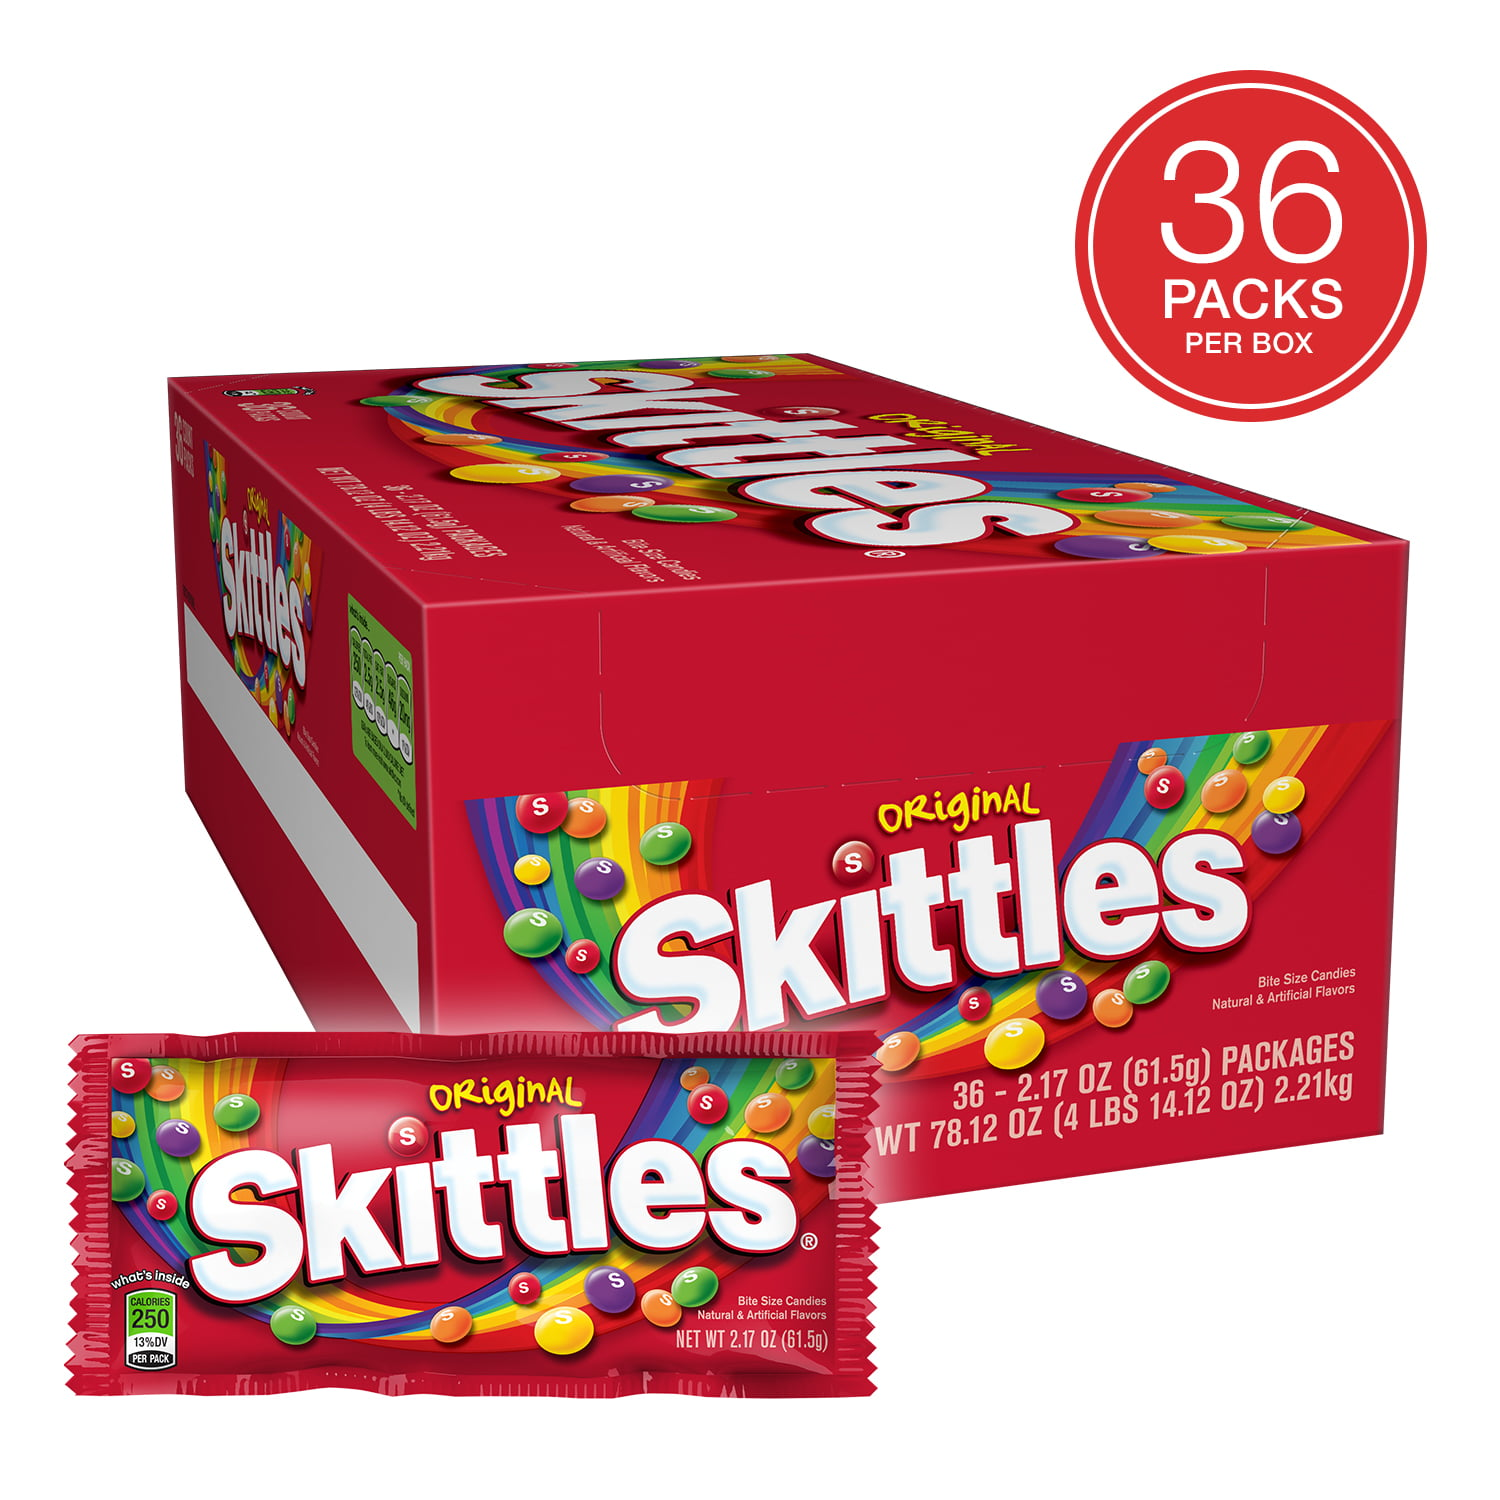 Skittles Original Candy, 2.17 Oz. (36 Single Packs)